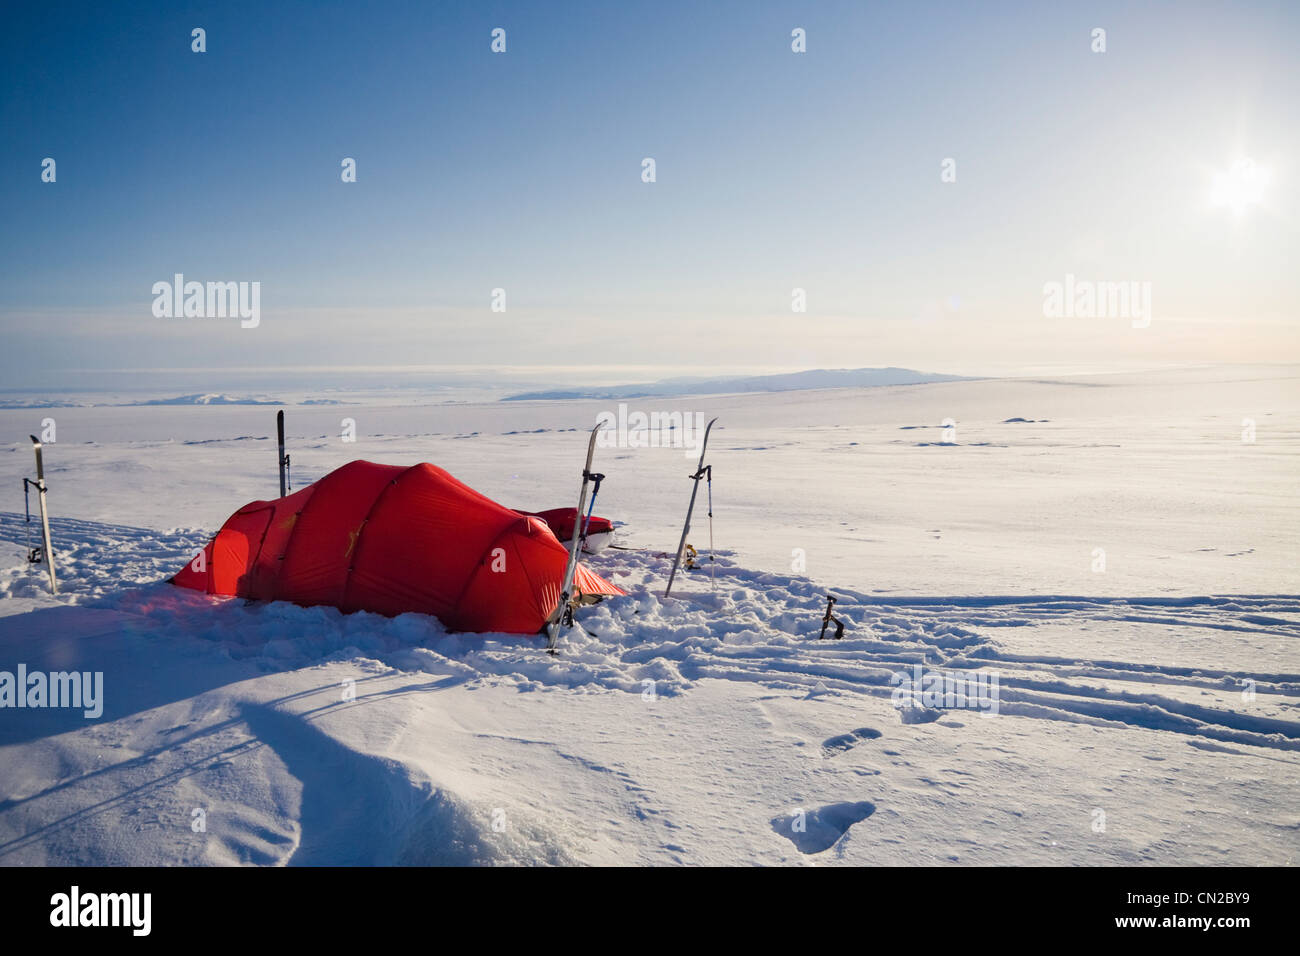 Polar expedition tent on icecap, Greenland - Stock Image